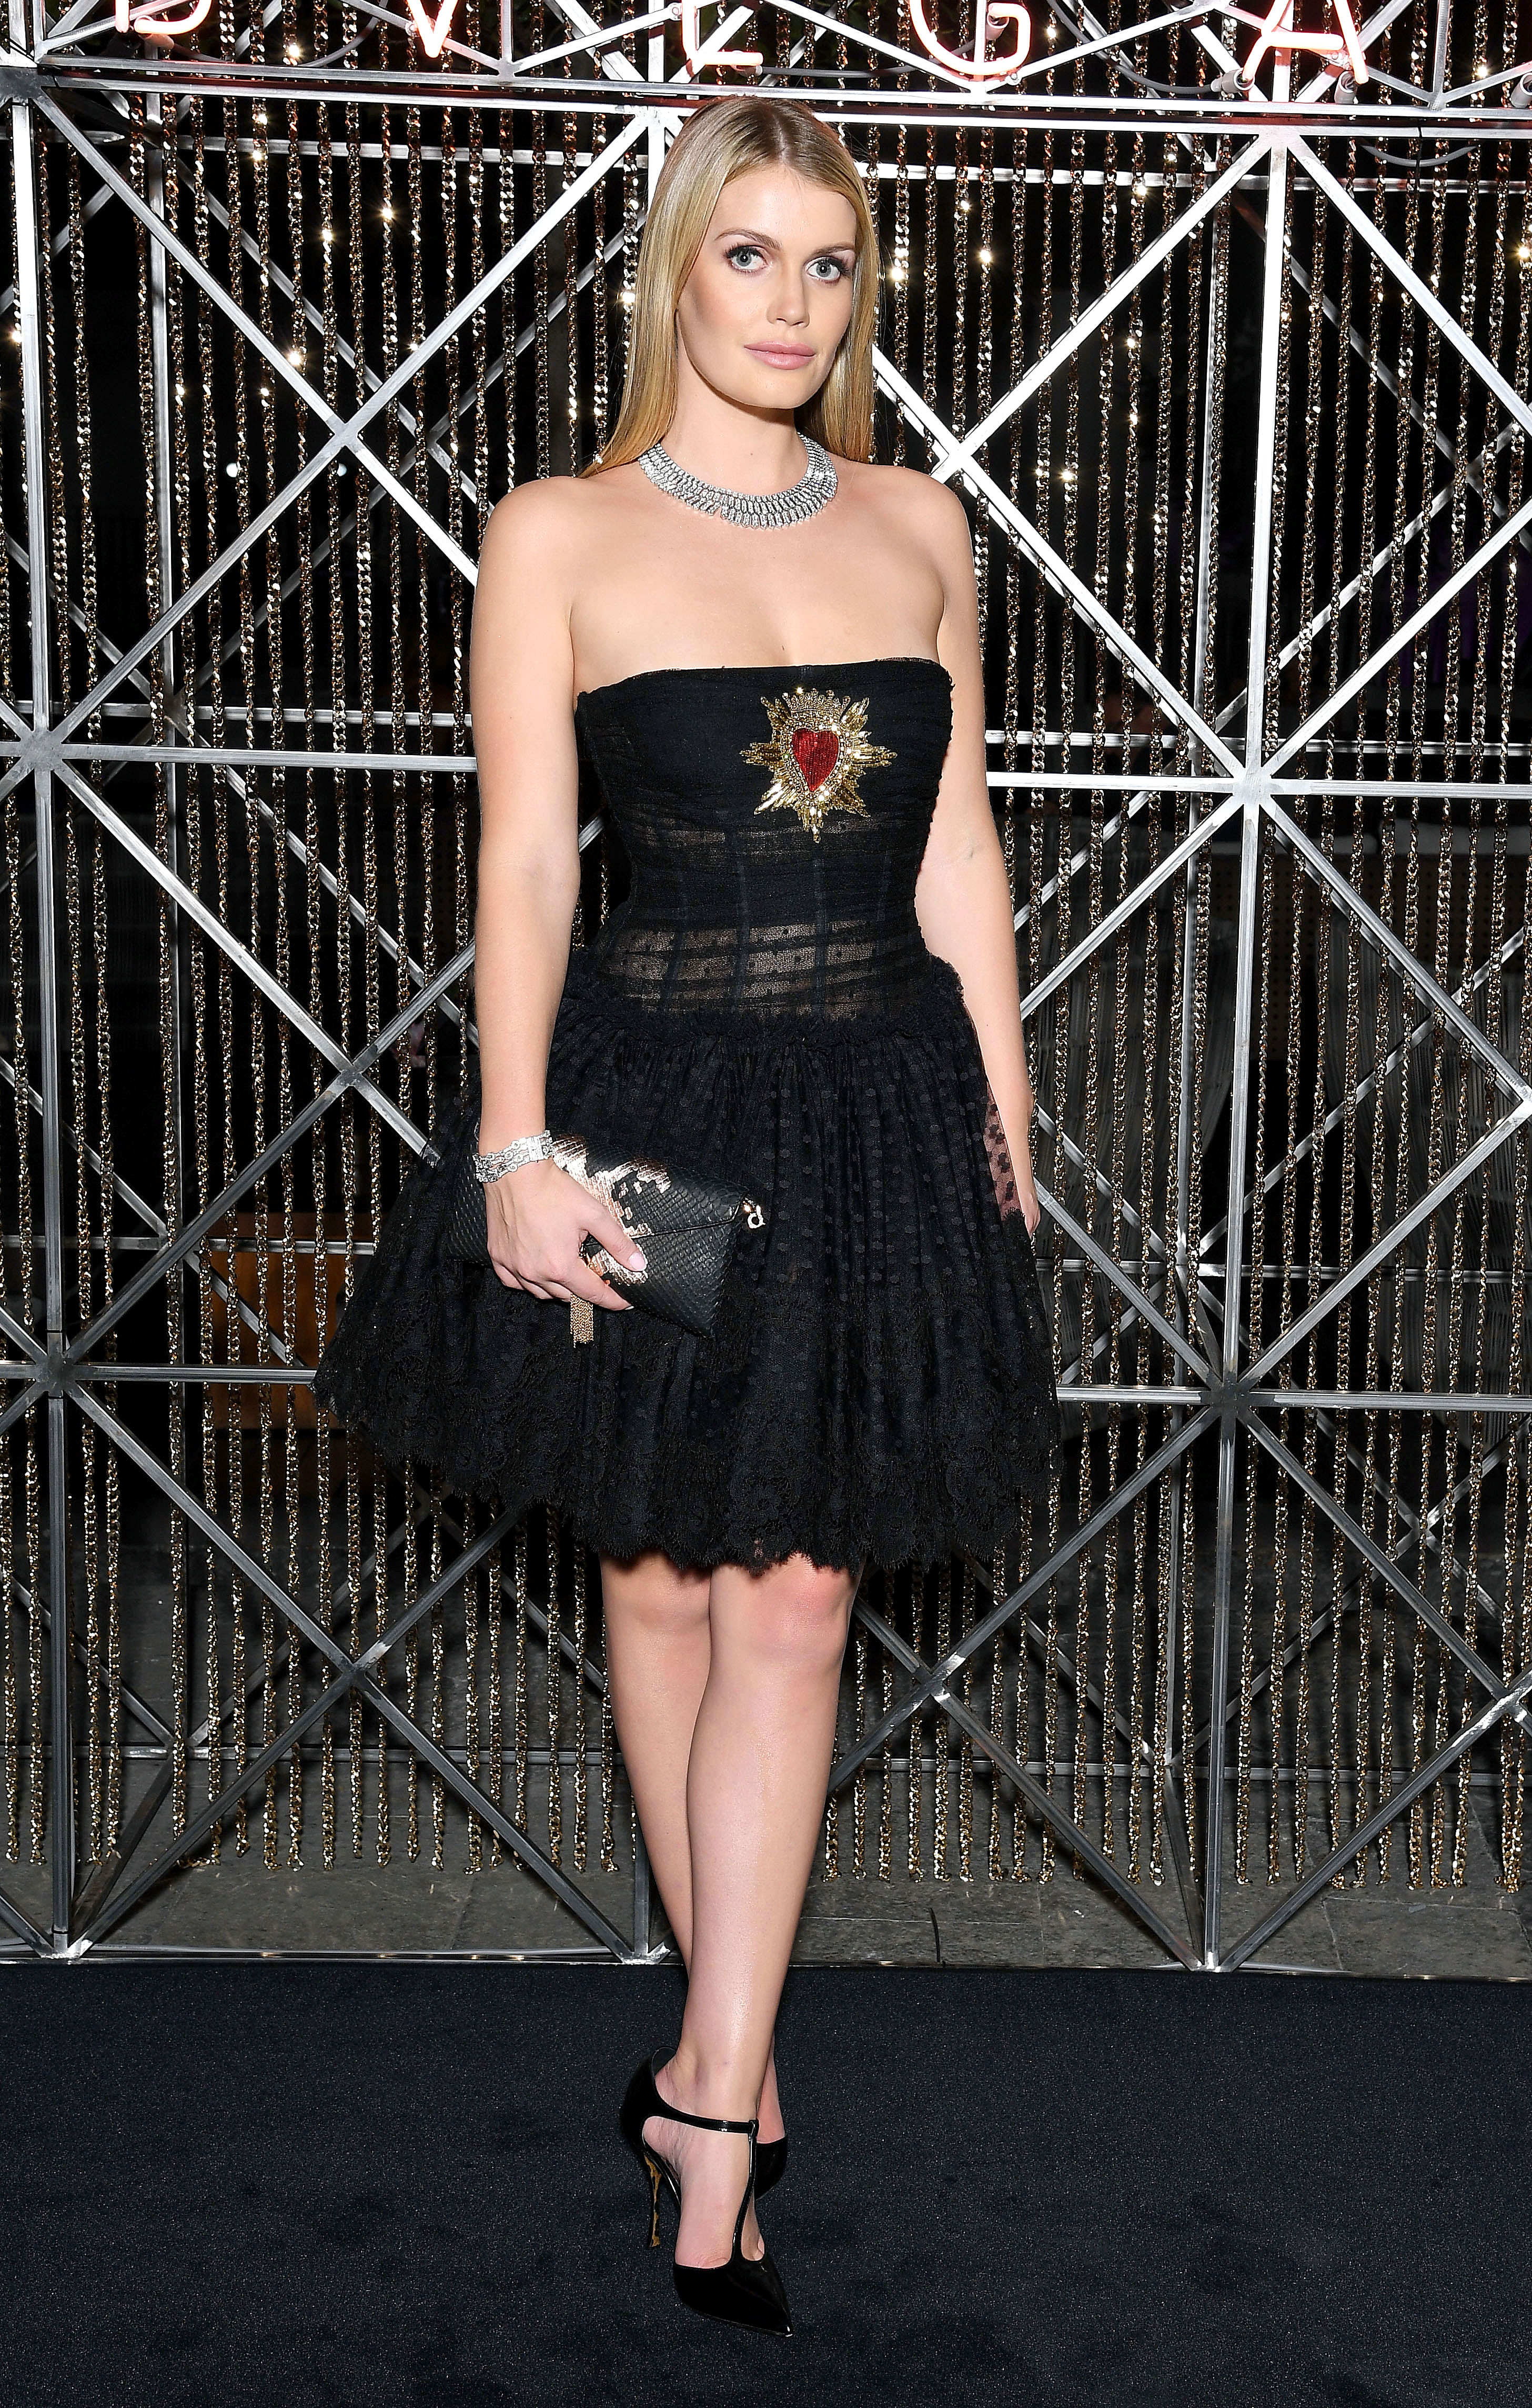 Kitty Spencer Slays Again - The socialite showed some leg in a heart-adorned Dolce & Gabanna mini at a Bulgari event during Milan Fashion Week on September 21, 2018.